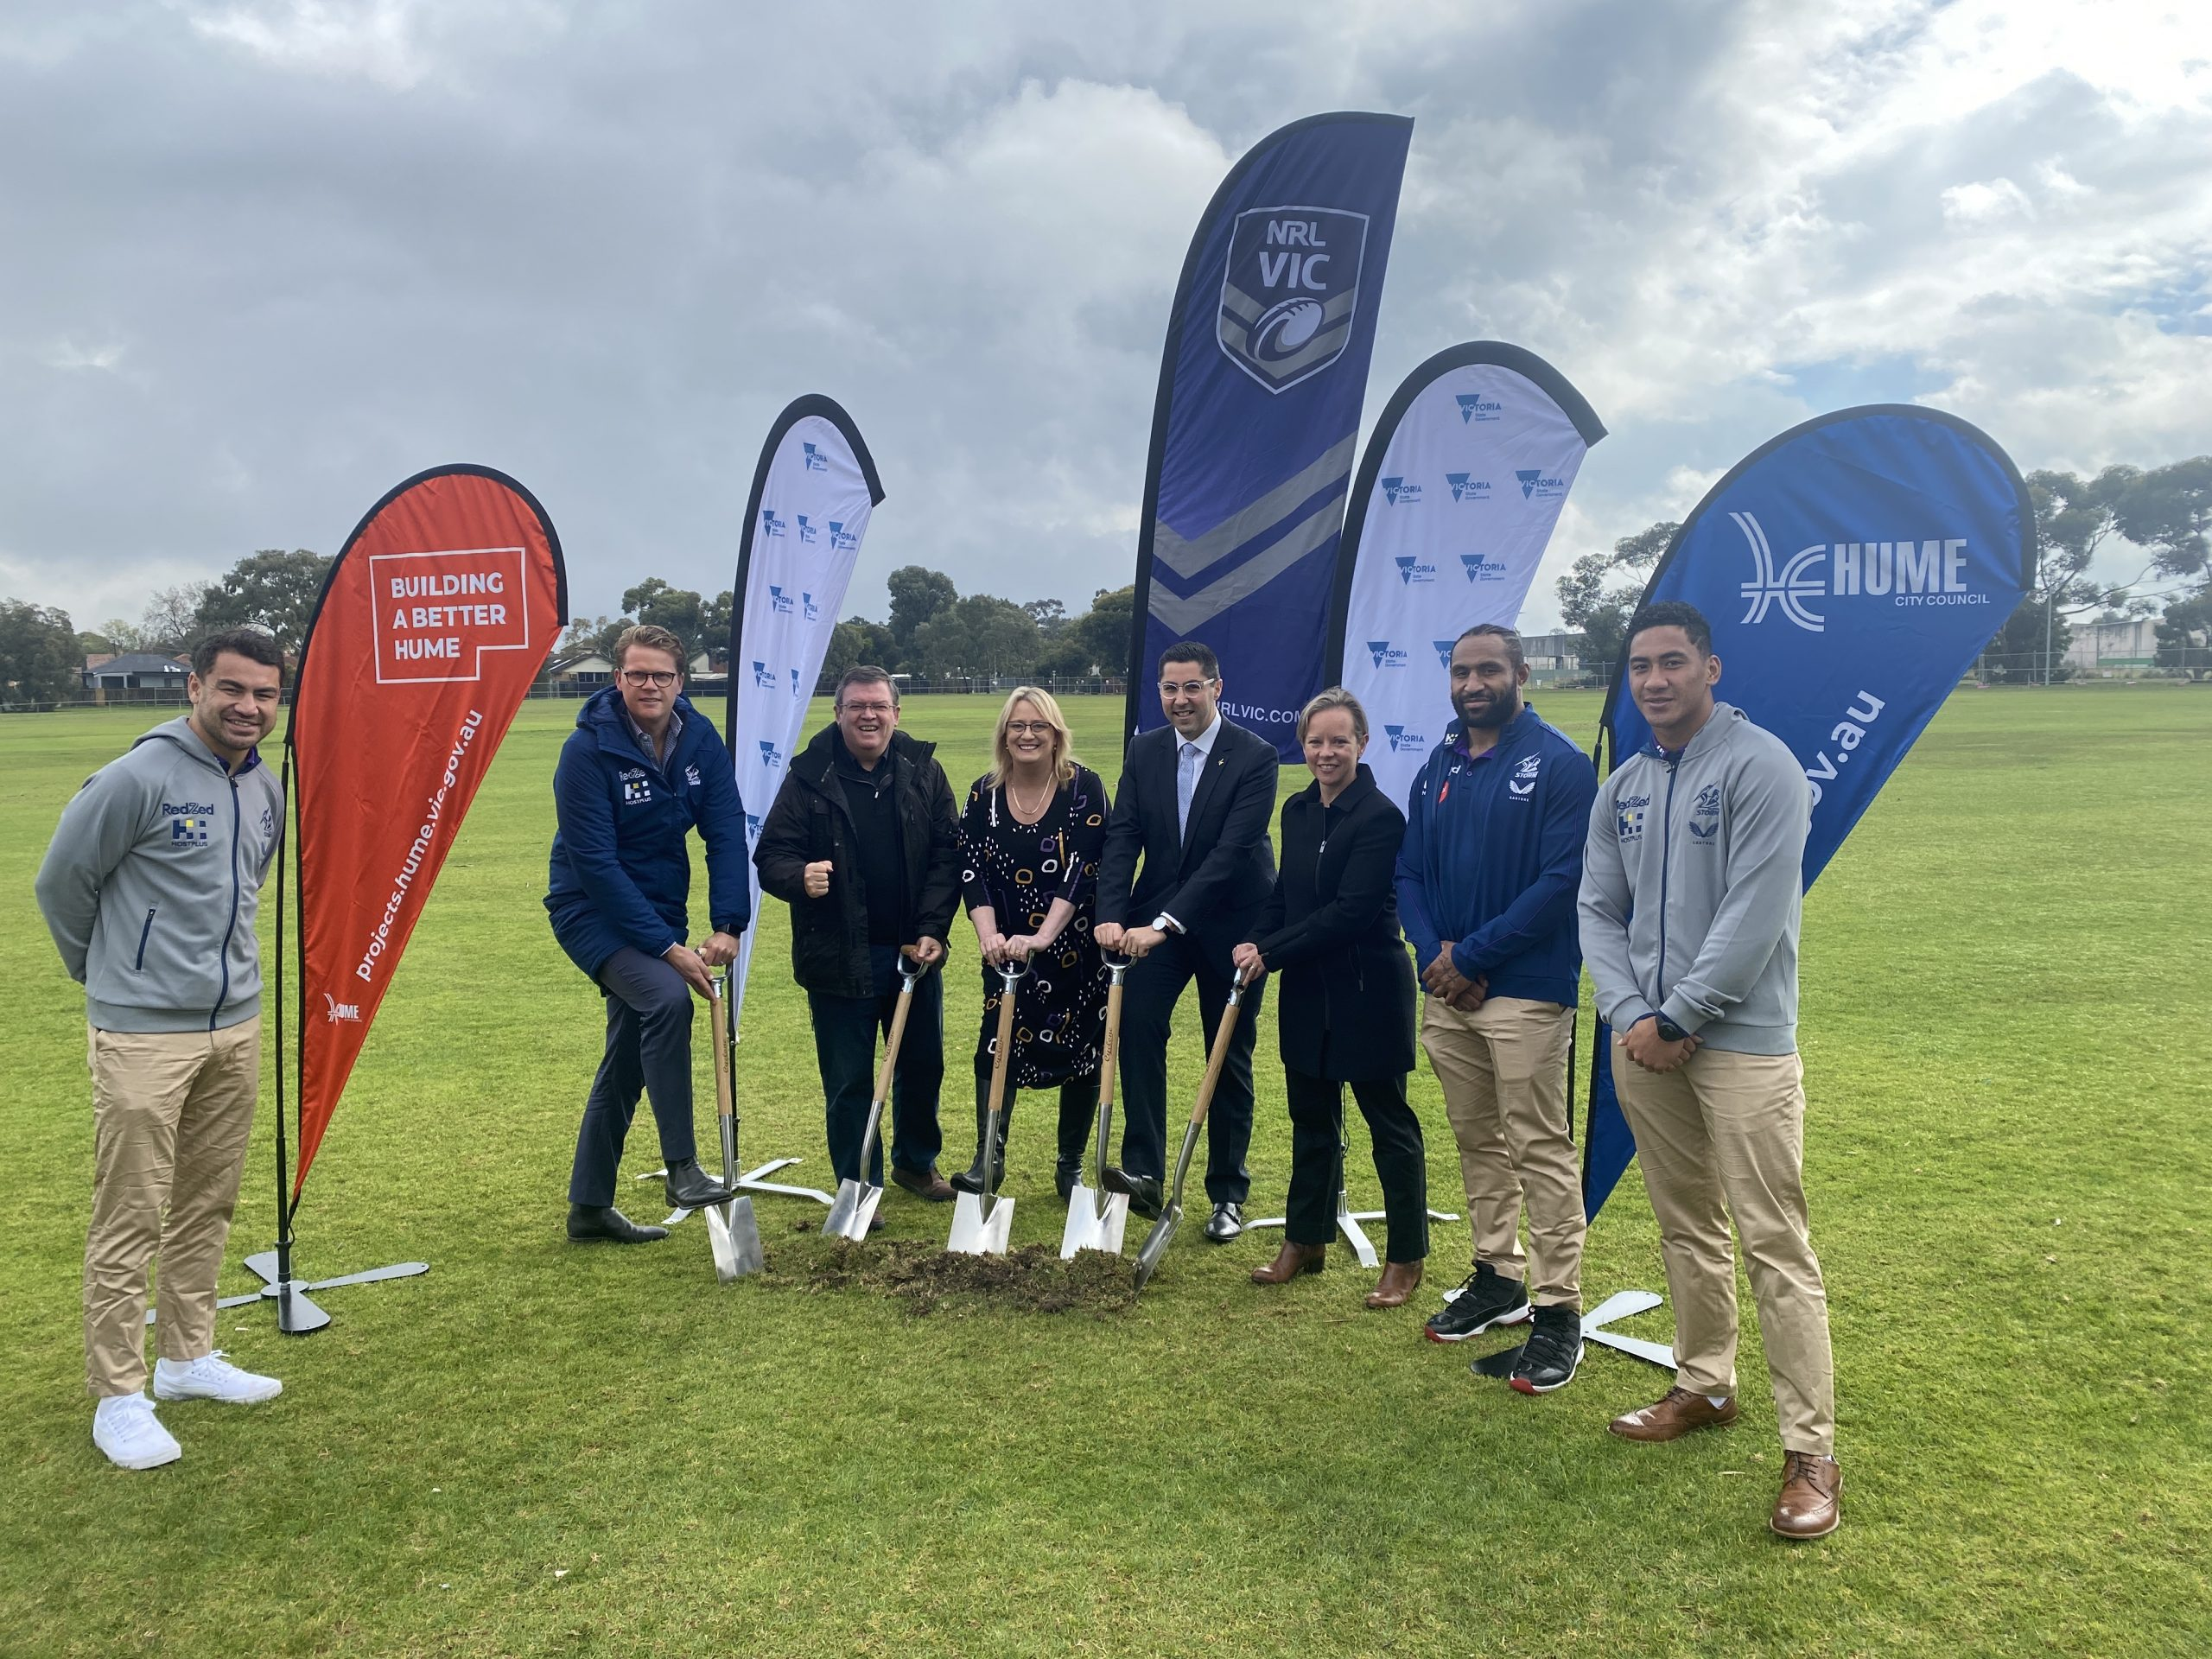 Construction starts on Victorian Rugby League State and Community Centre